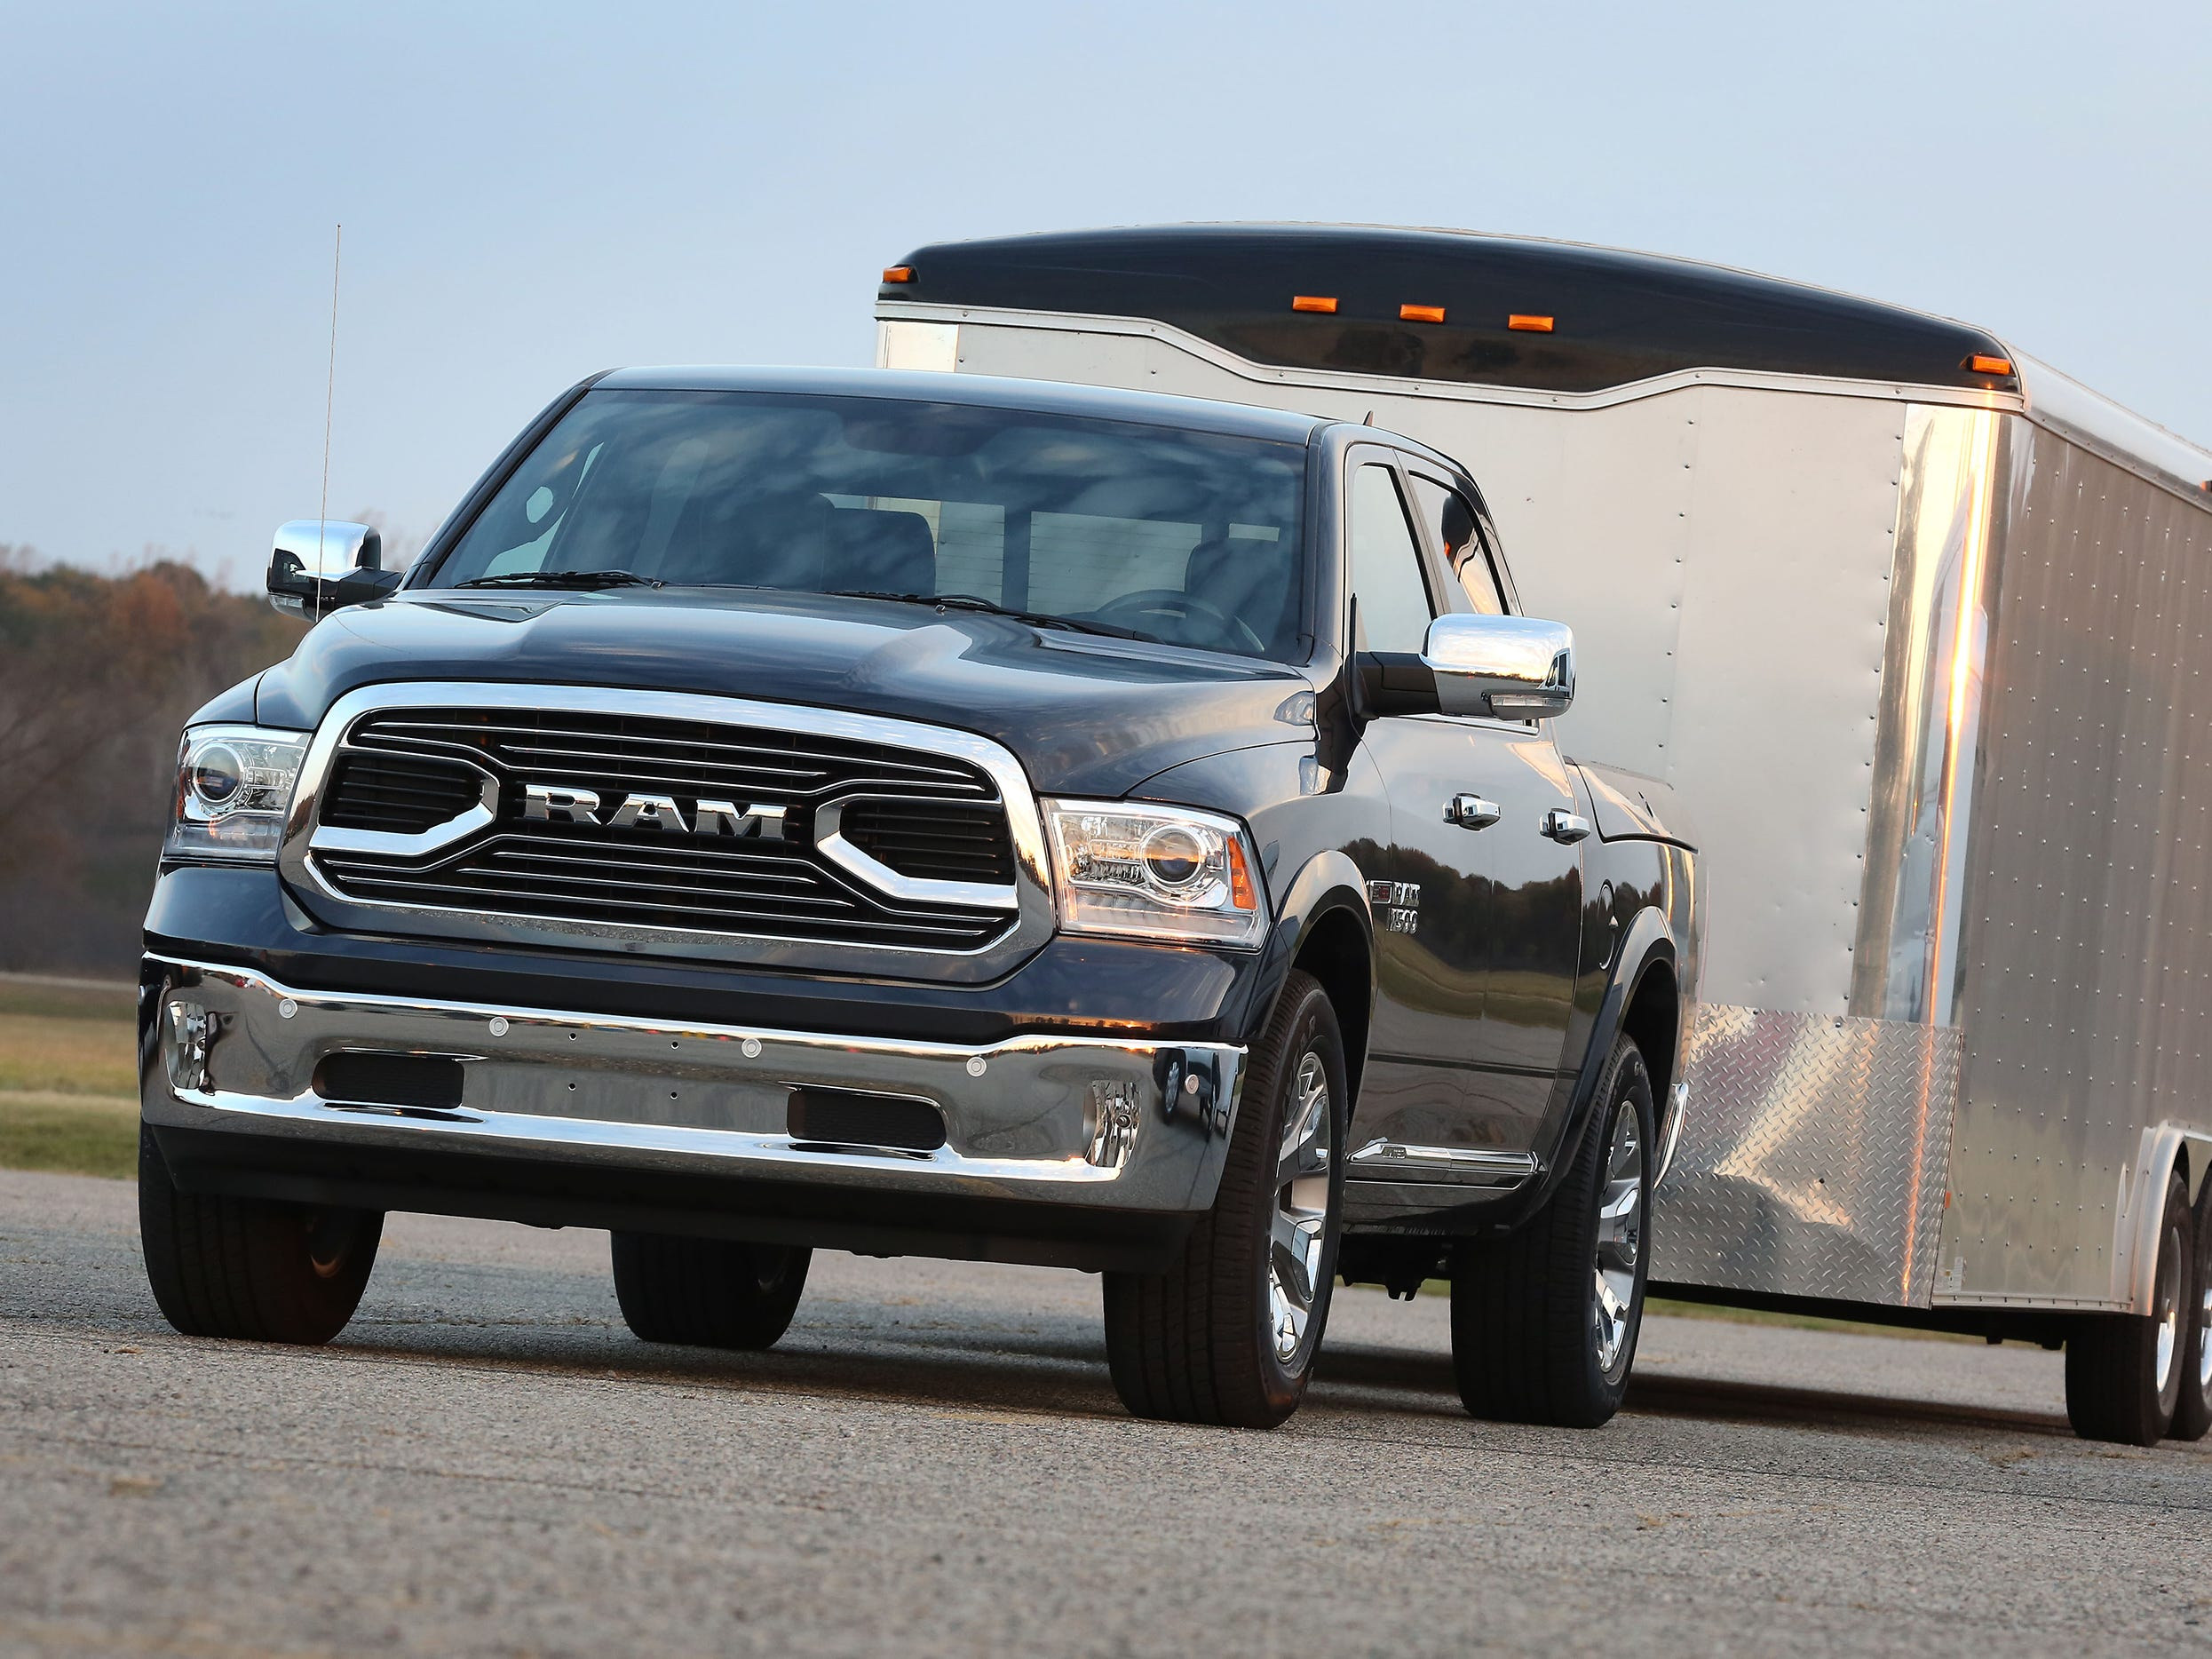 Drive a diesel? You'll also pay the governor's 45-cent per gallon surcharge. That means a 22 mpg 2018 Ram 1500 turbo V-6 would cost $289 more to operate a year over the current $1,957.